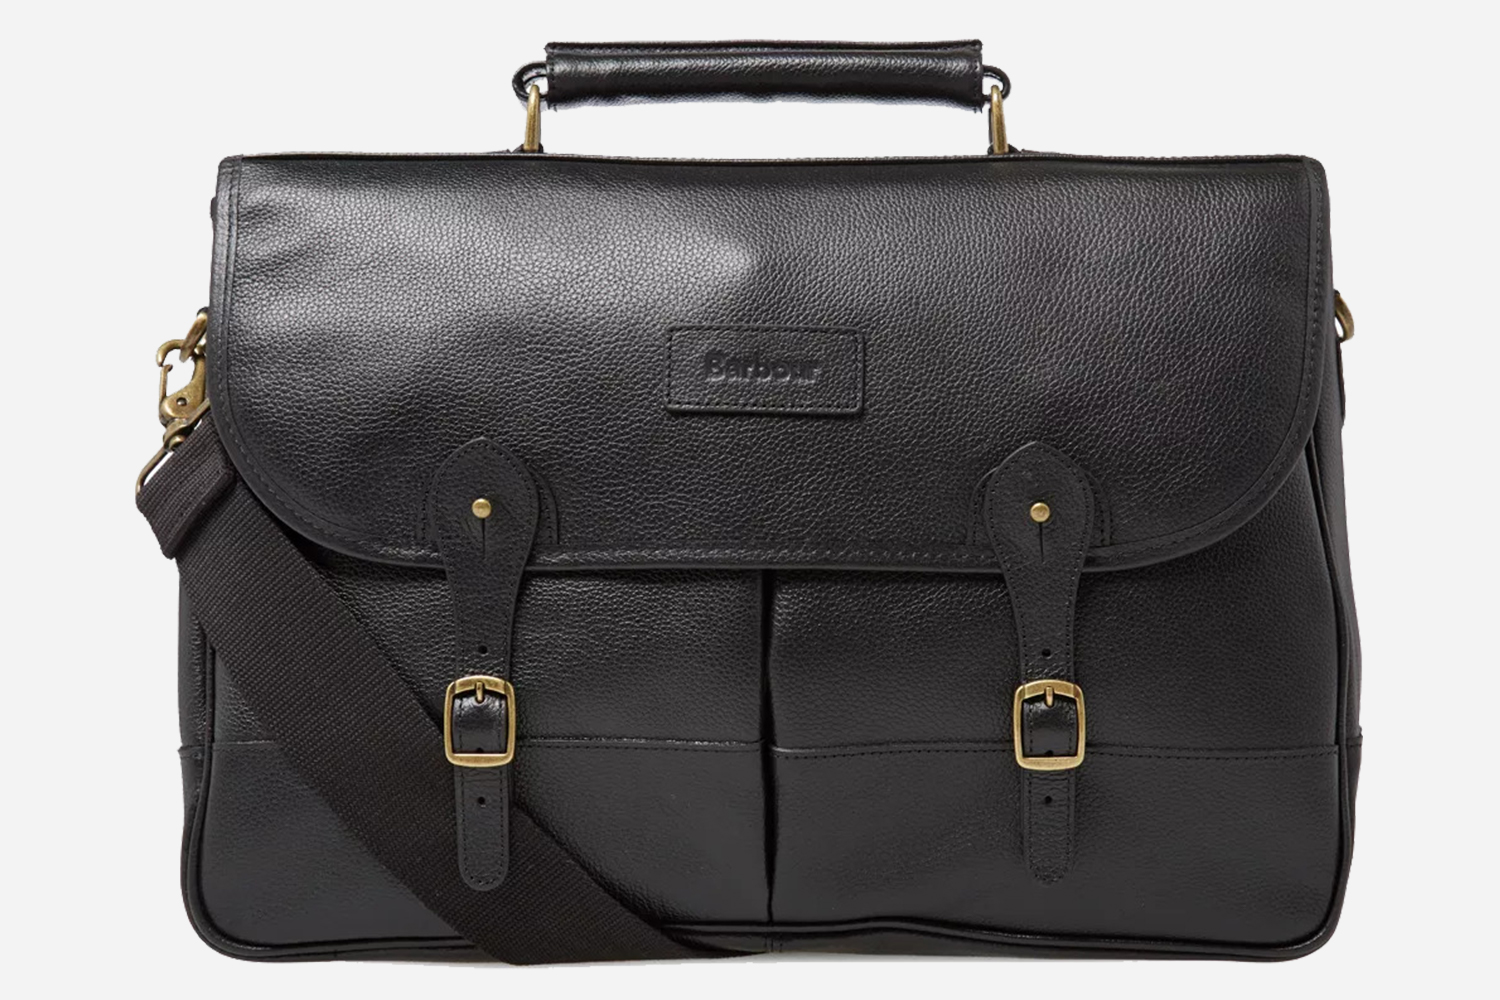 Barbour Sale at End Clothing Black Leather Briefcases